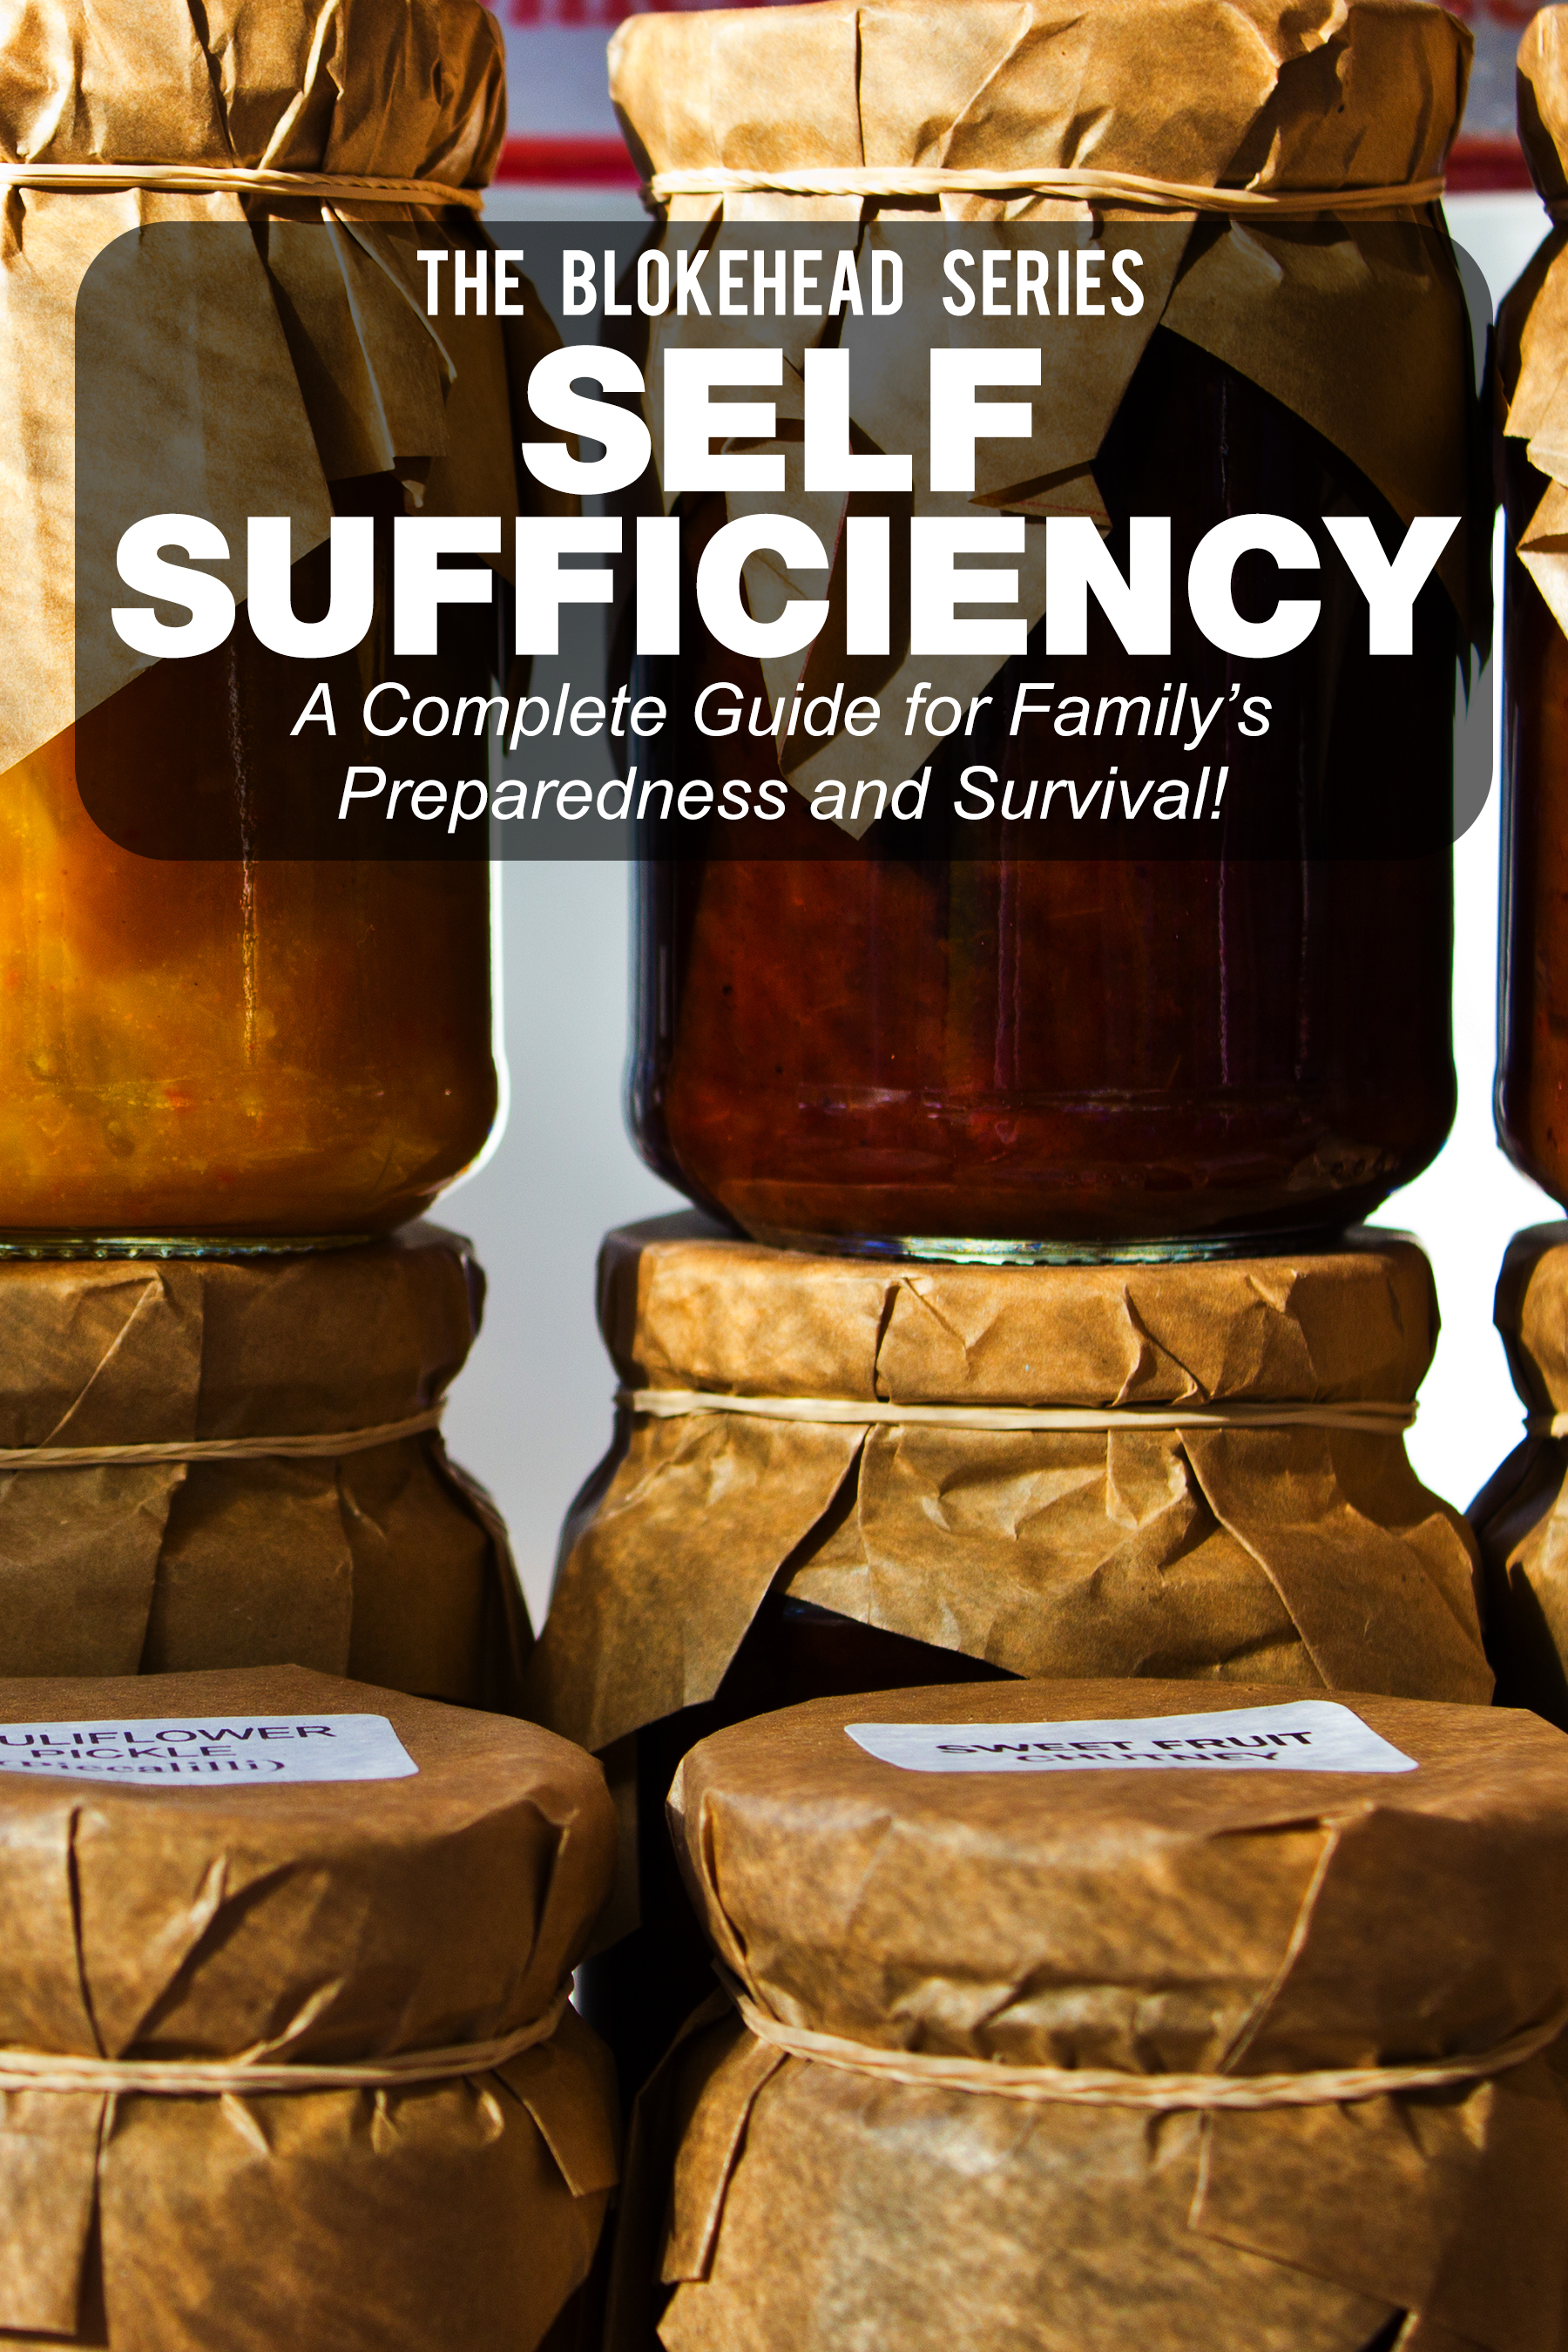 Self sufficiency: a complete guide for family's preparedness and survival!